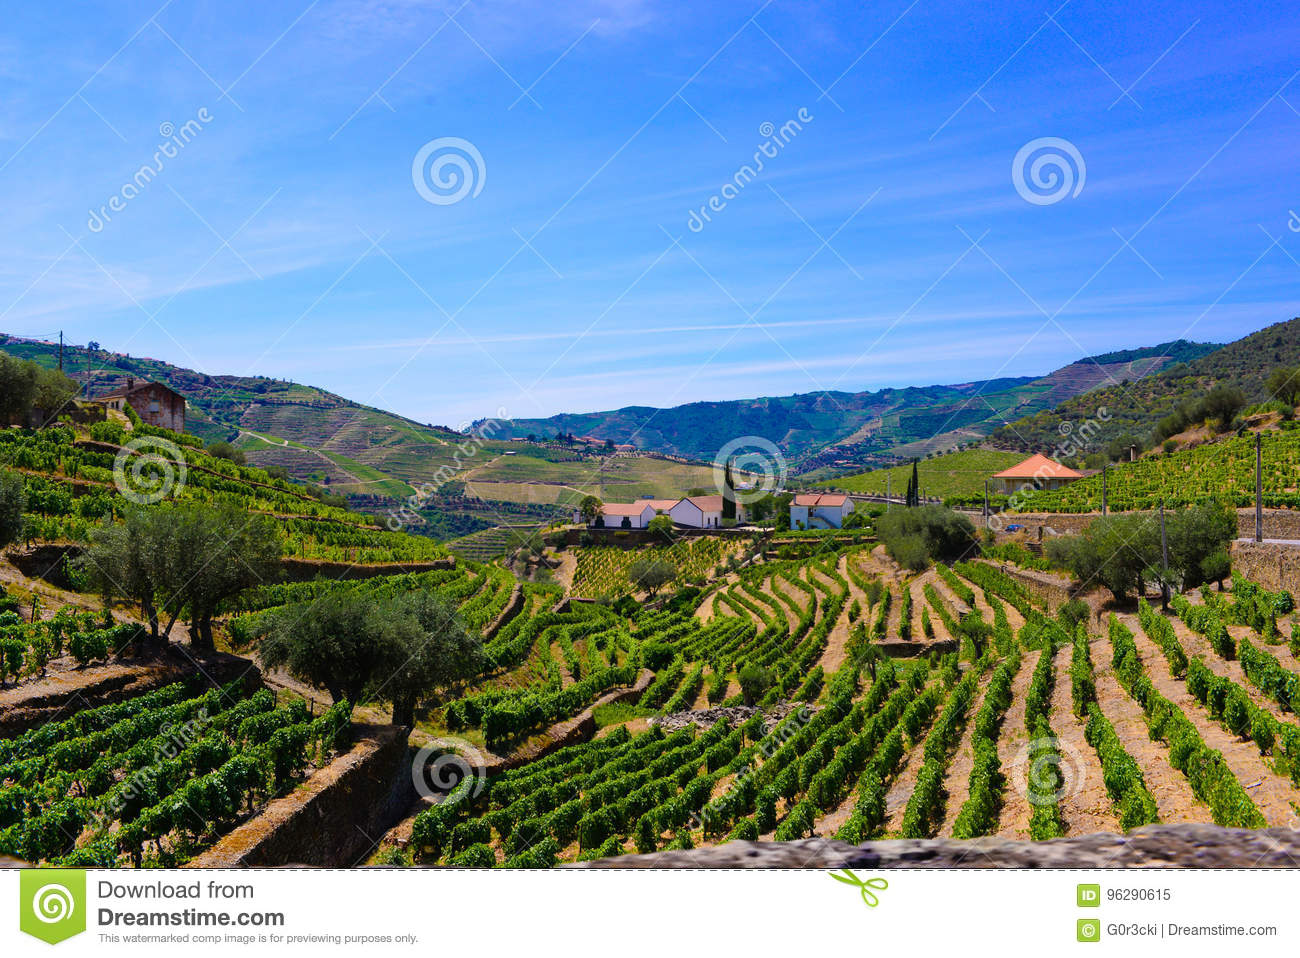 Portugal Douro Vineyards Rocky Terraces, Porto Wine Landscape, Farm Buildings